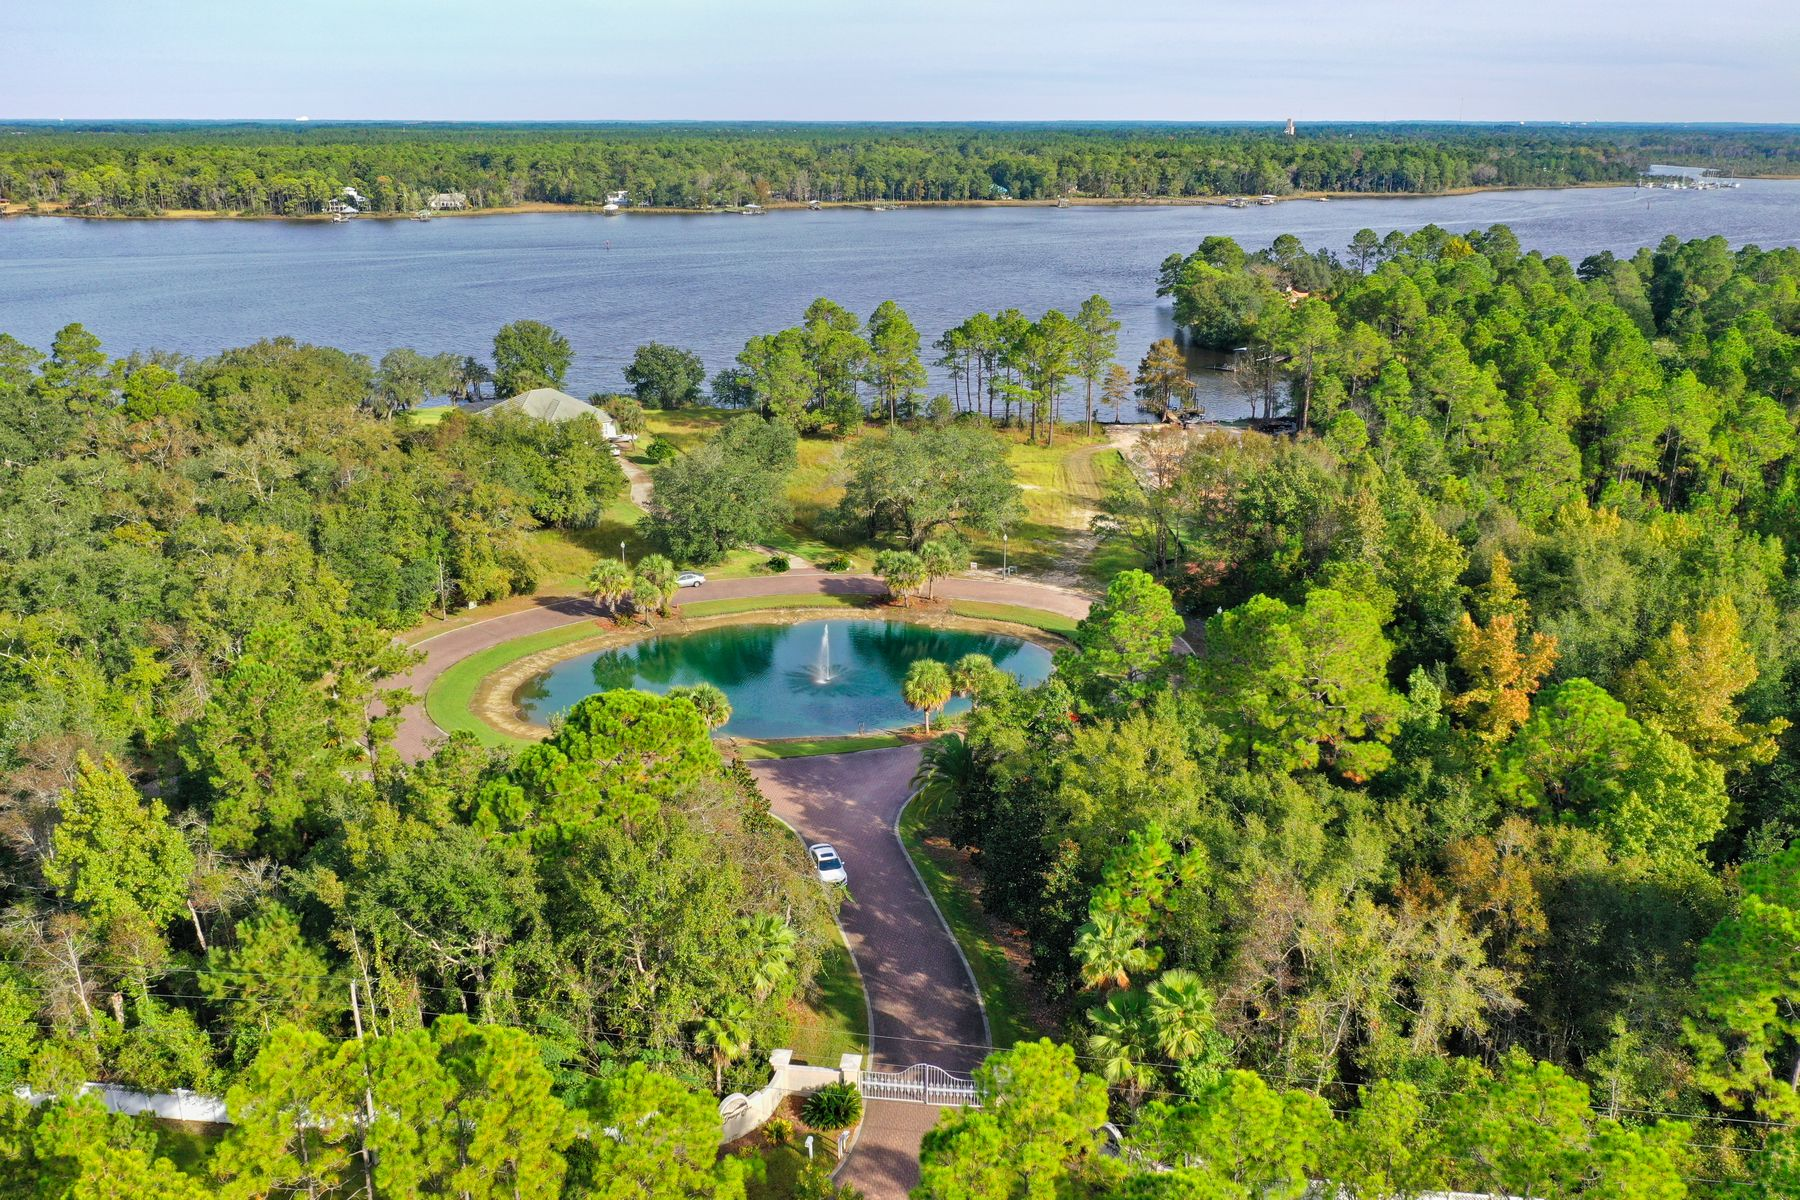 Land for Sale at Lagrange Cove Circle, Freeport, FL 32439 Lot 6 Lagrange Cove Circle Freeport, Florida 32439 United States